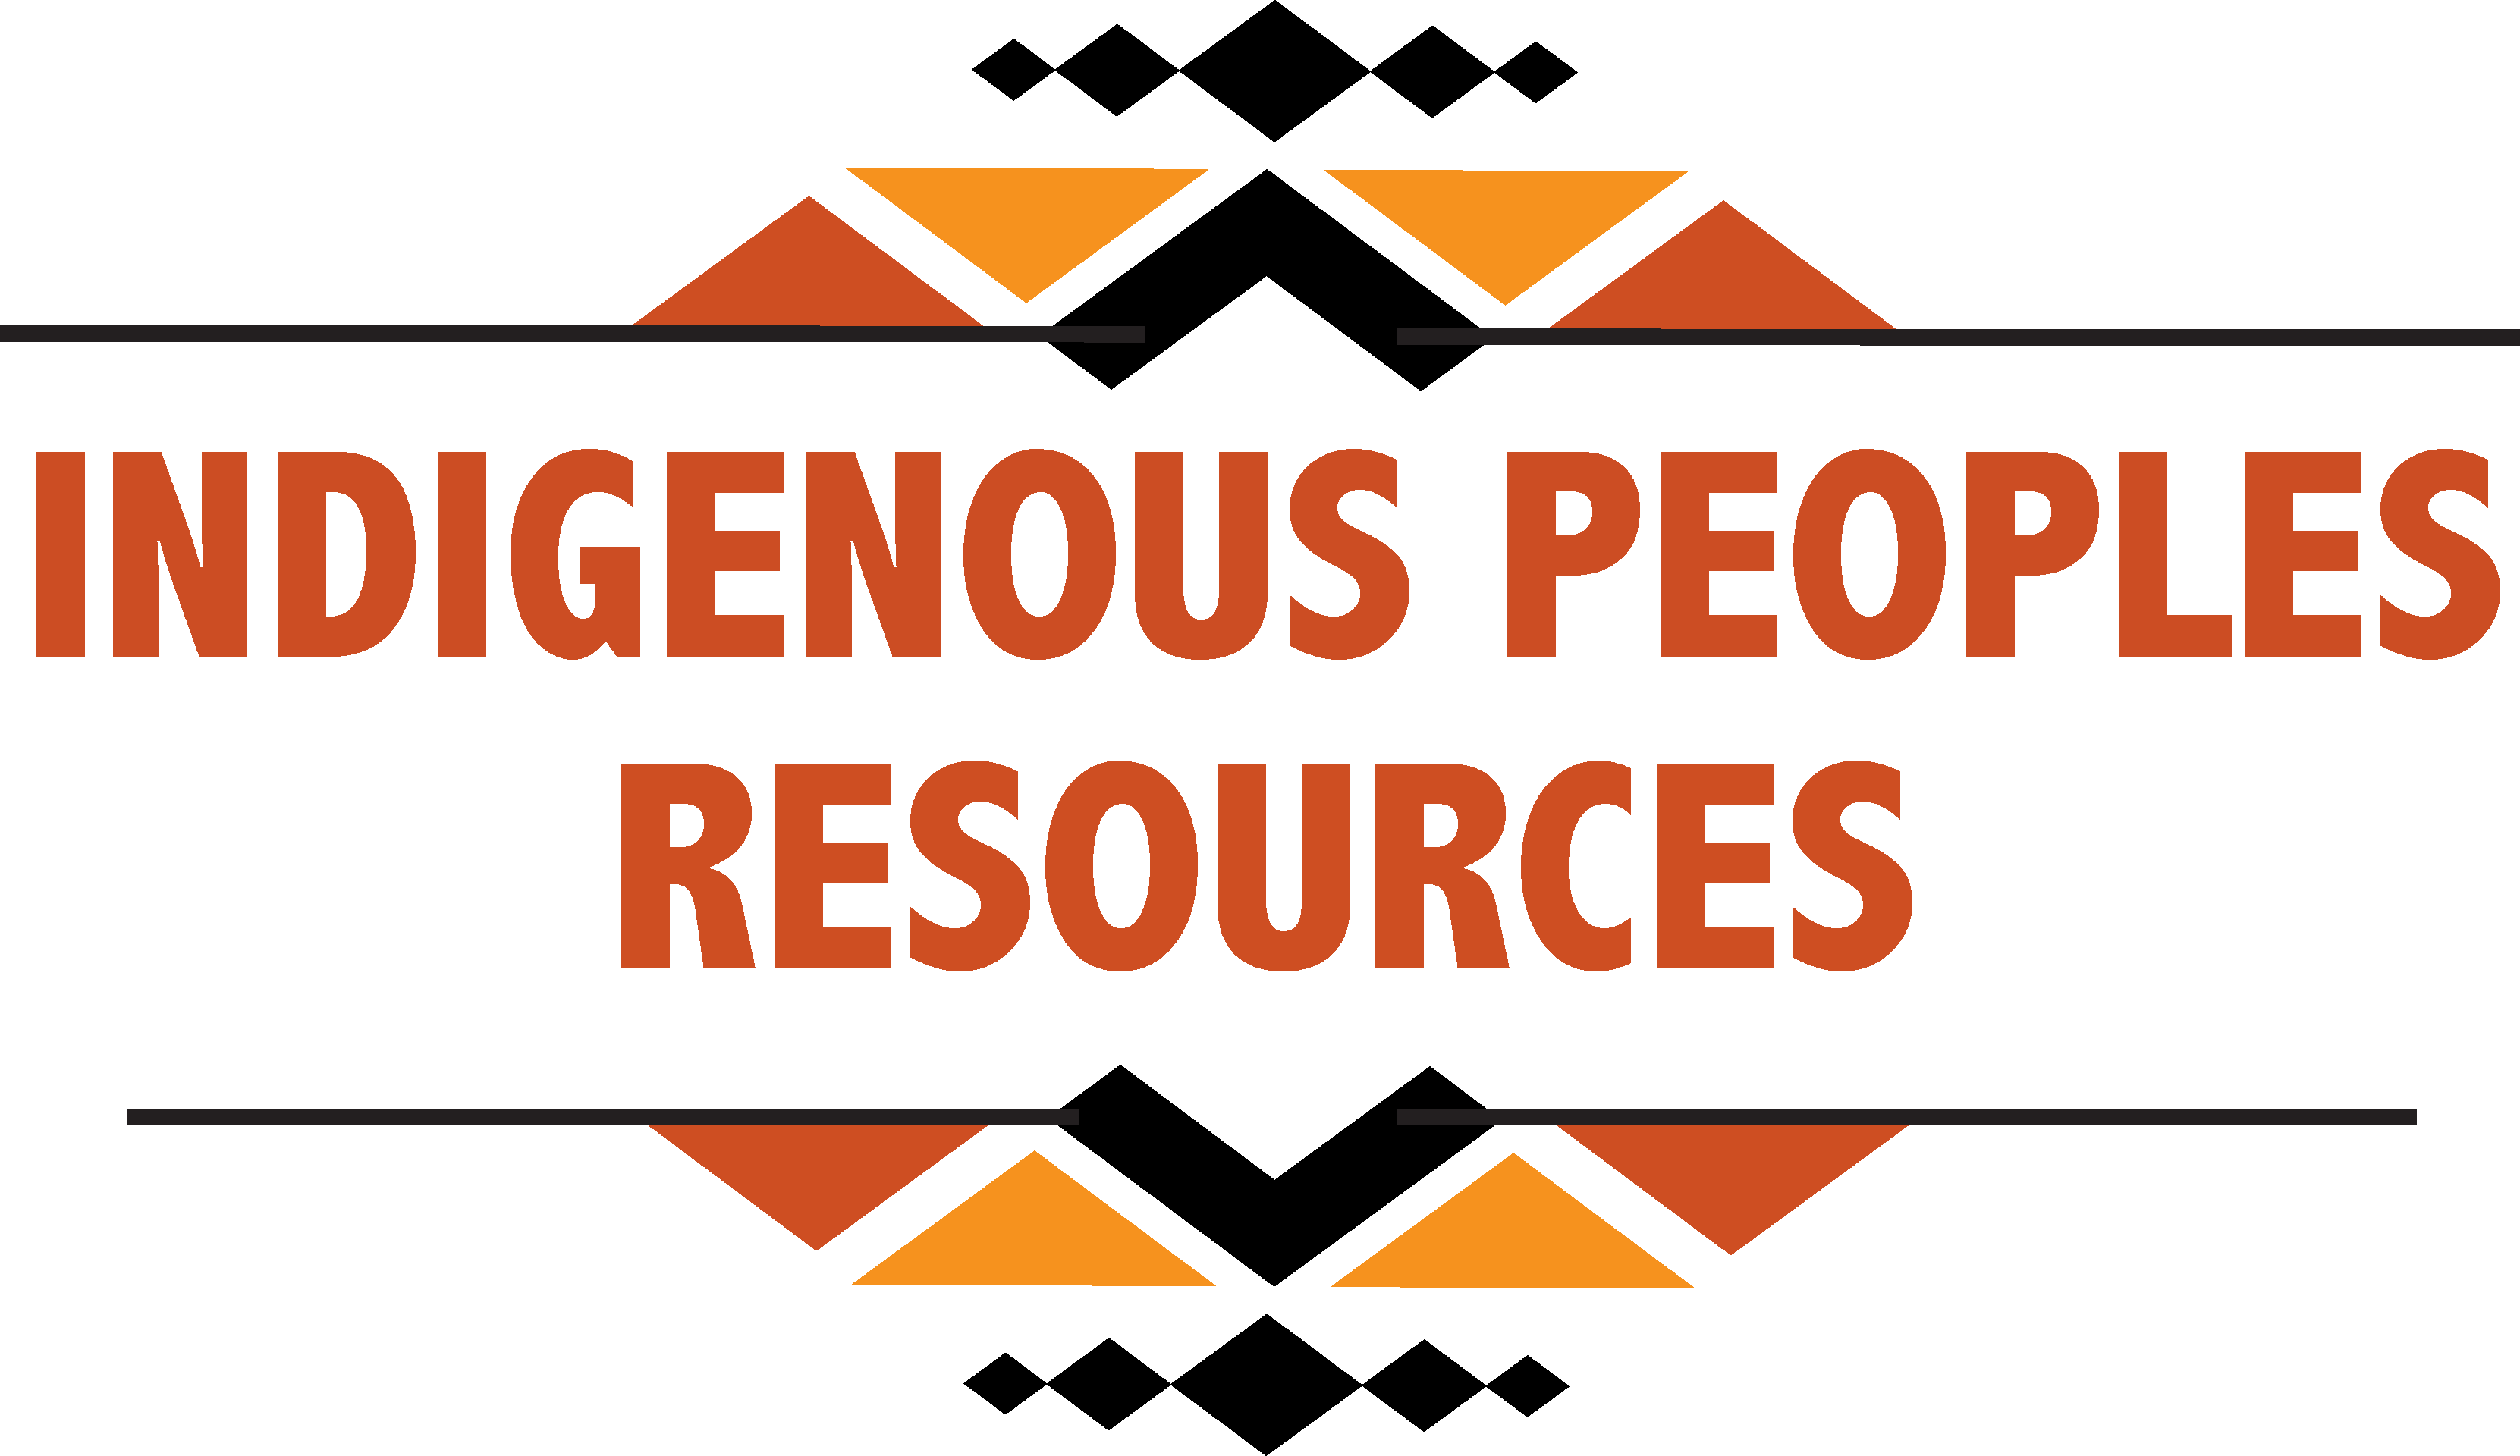 Indigenous Peoples Resources